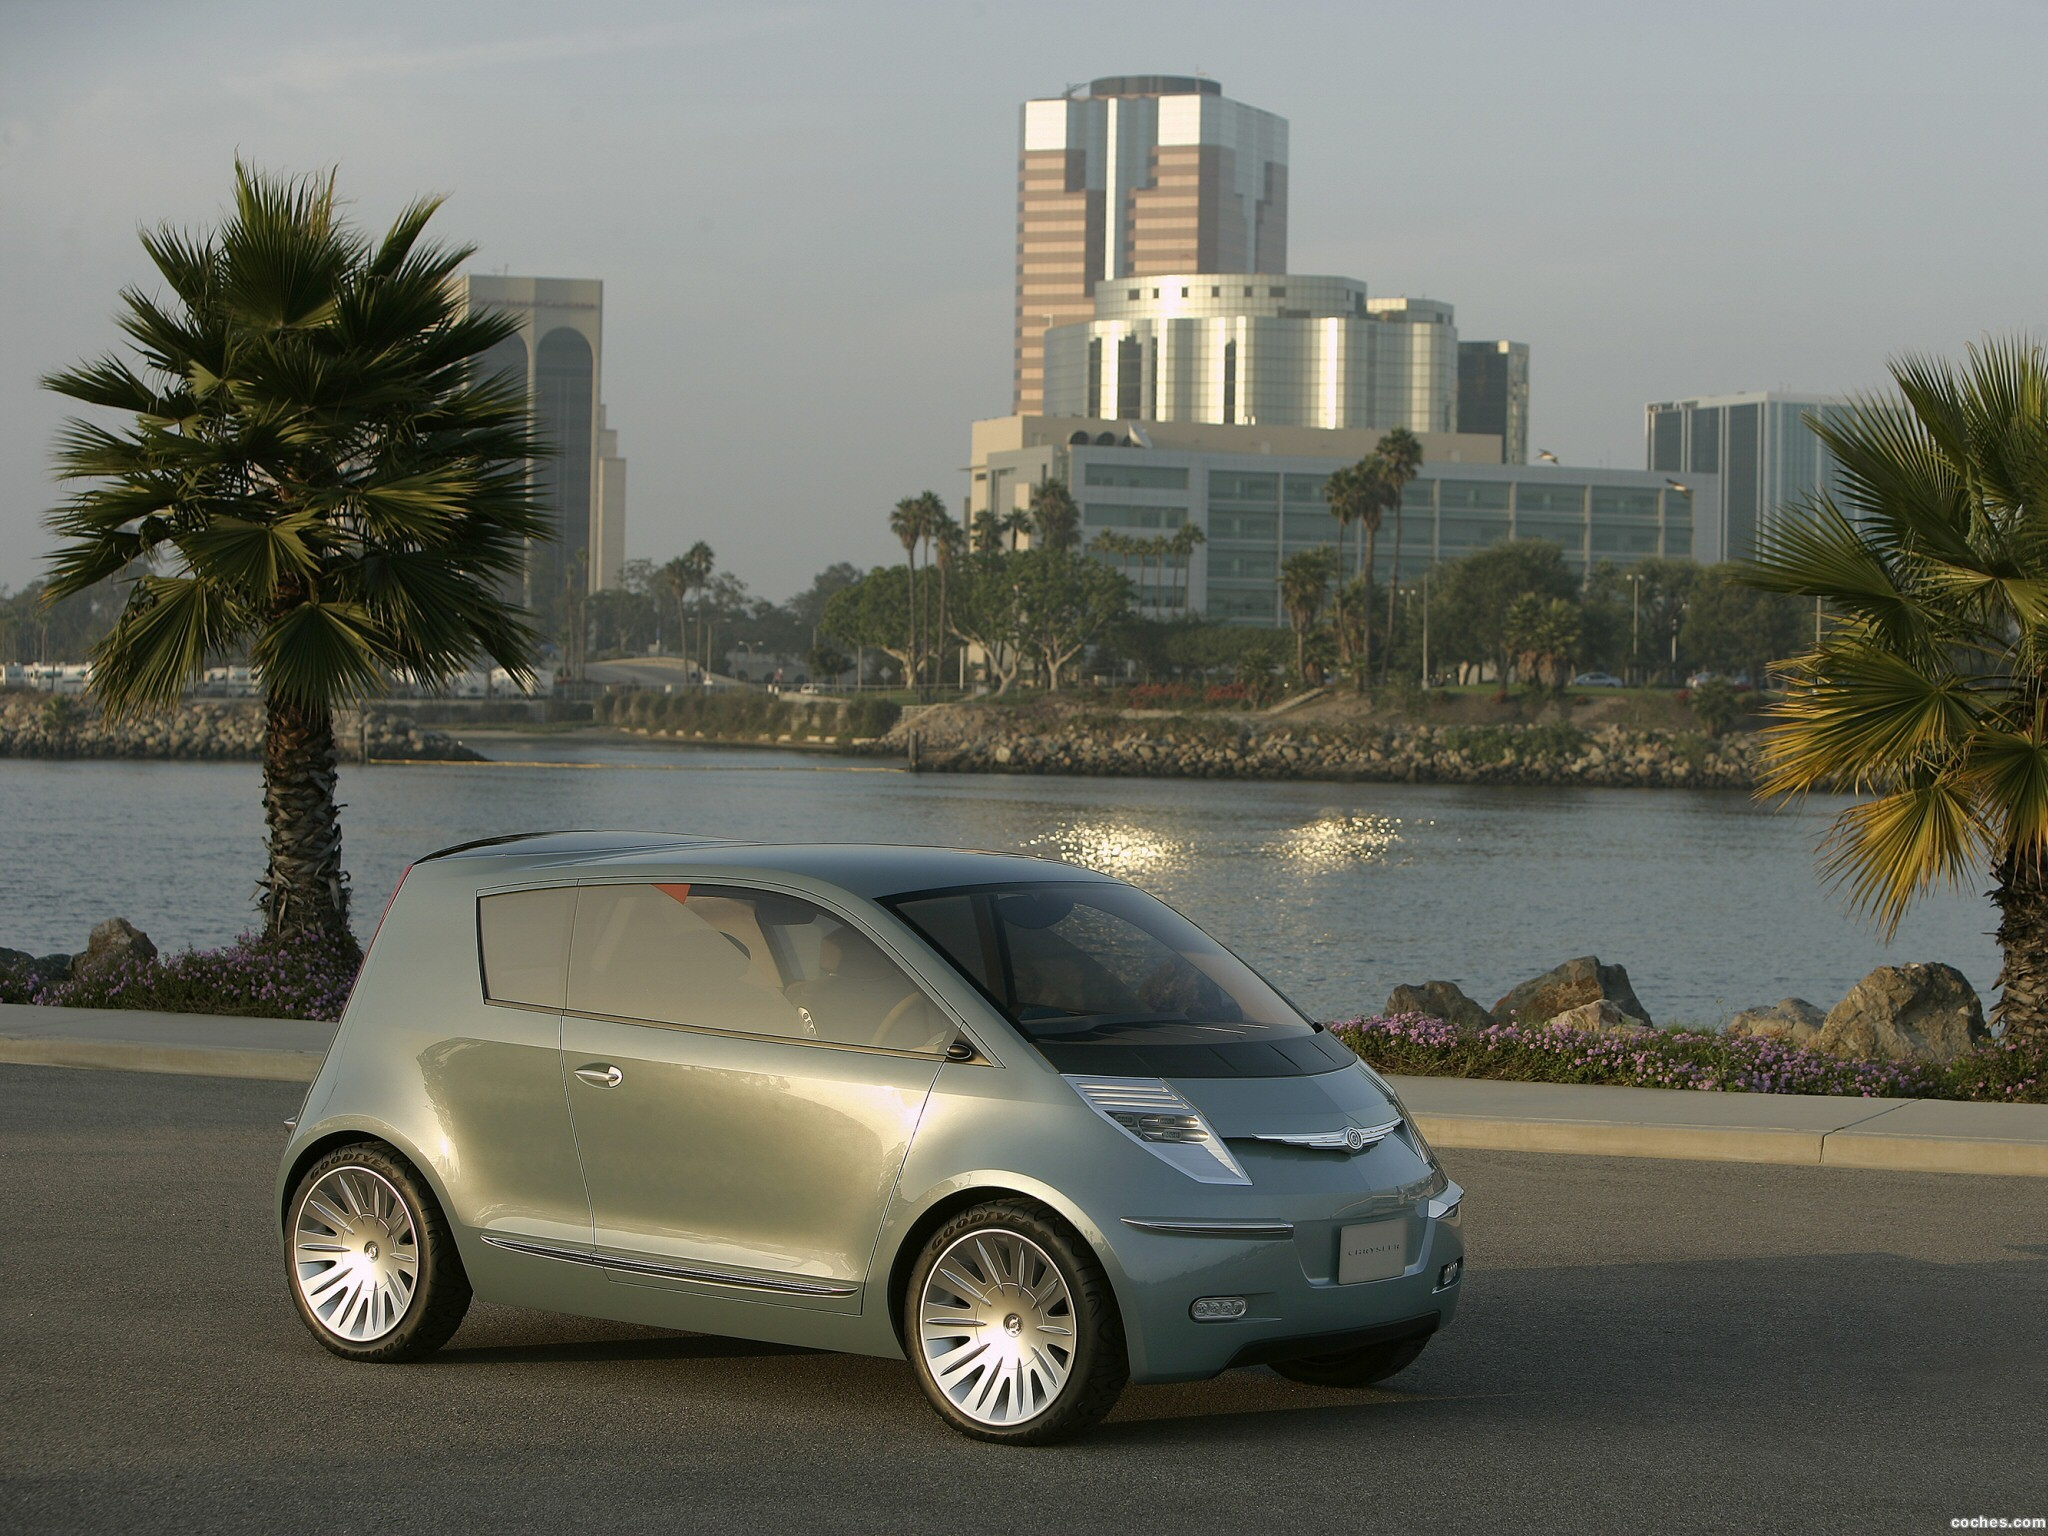 Fotos De Chrysler Akino Concept 2005 HD Wallpapers Download free images and photos [musssic.tk]